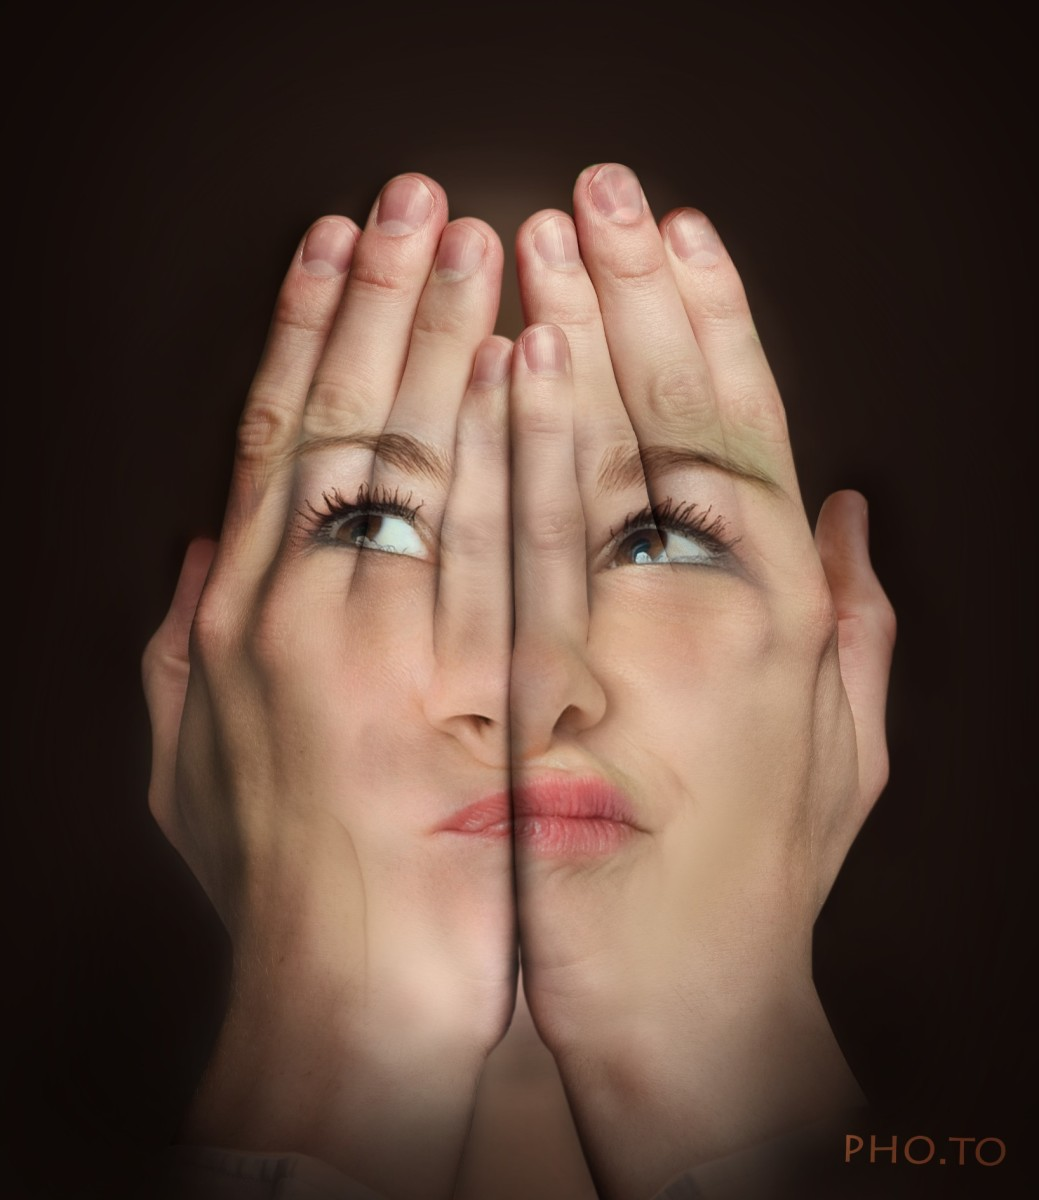 'Hands over face' free online photo montage